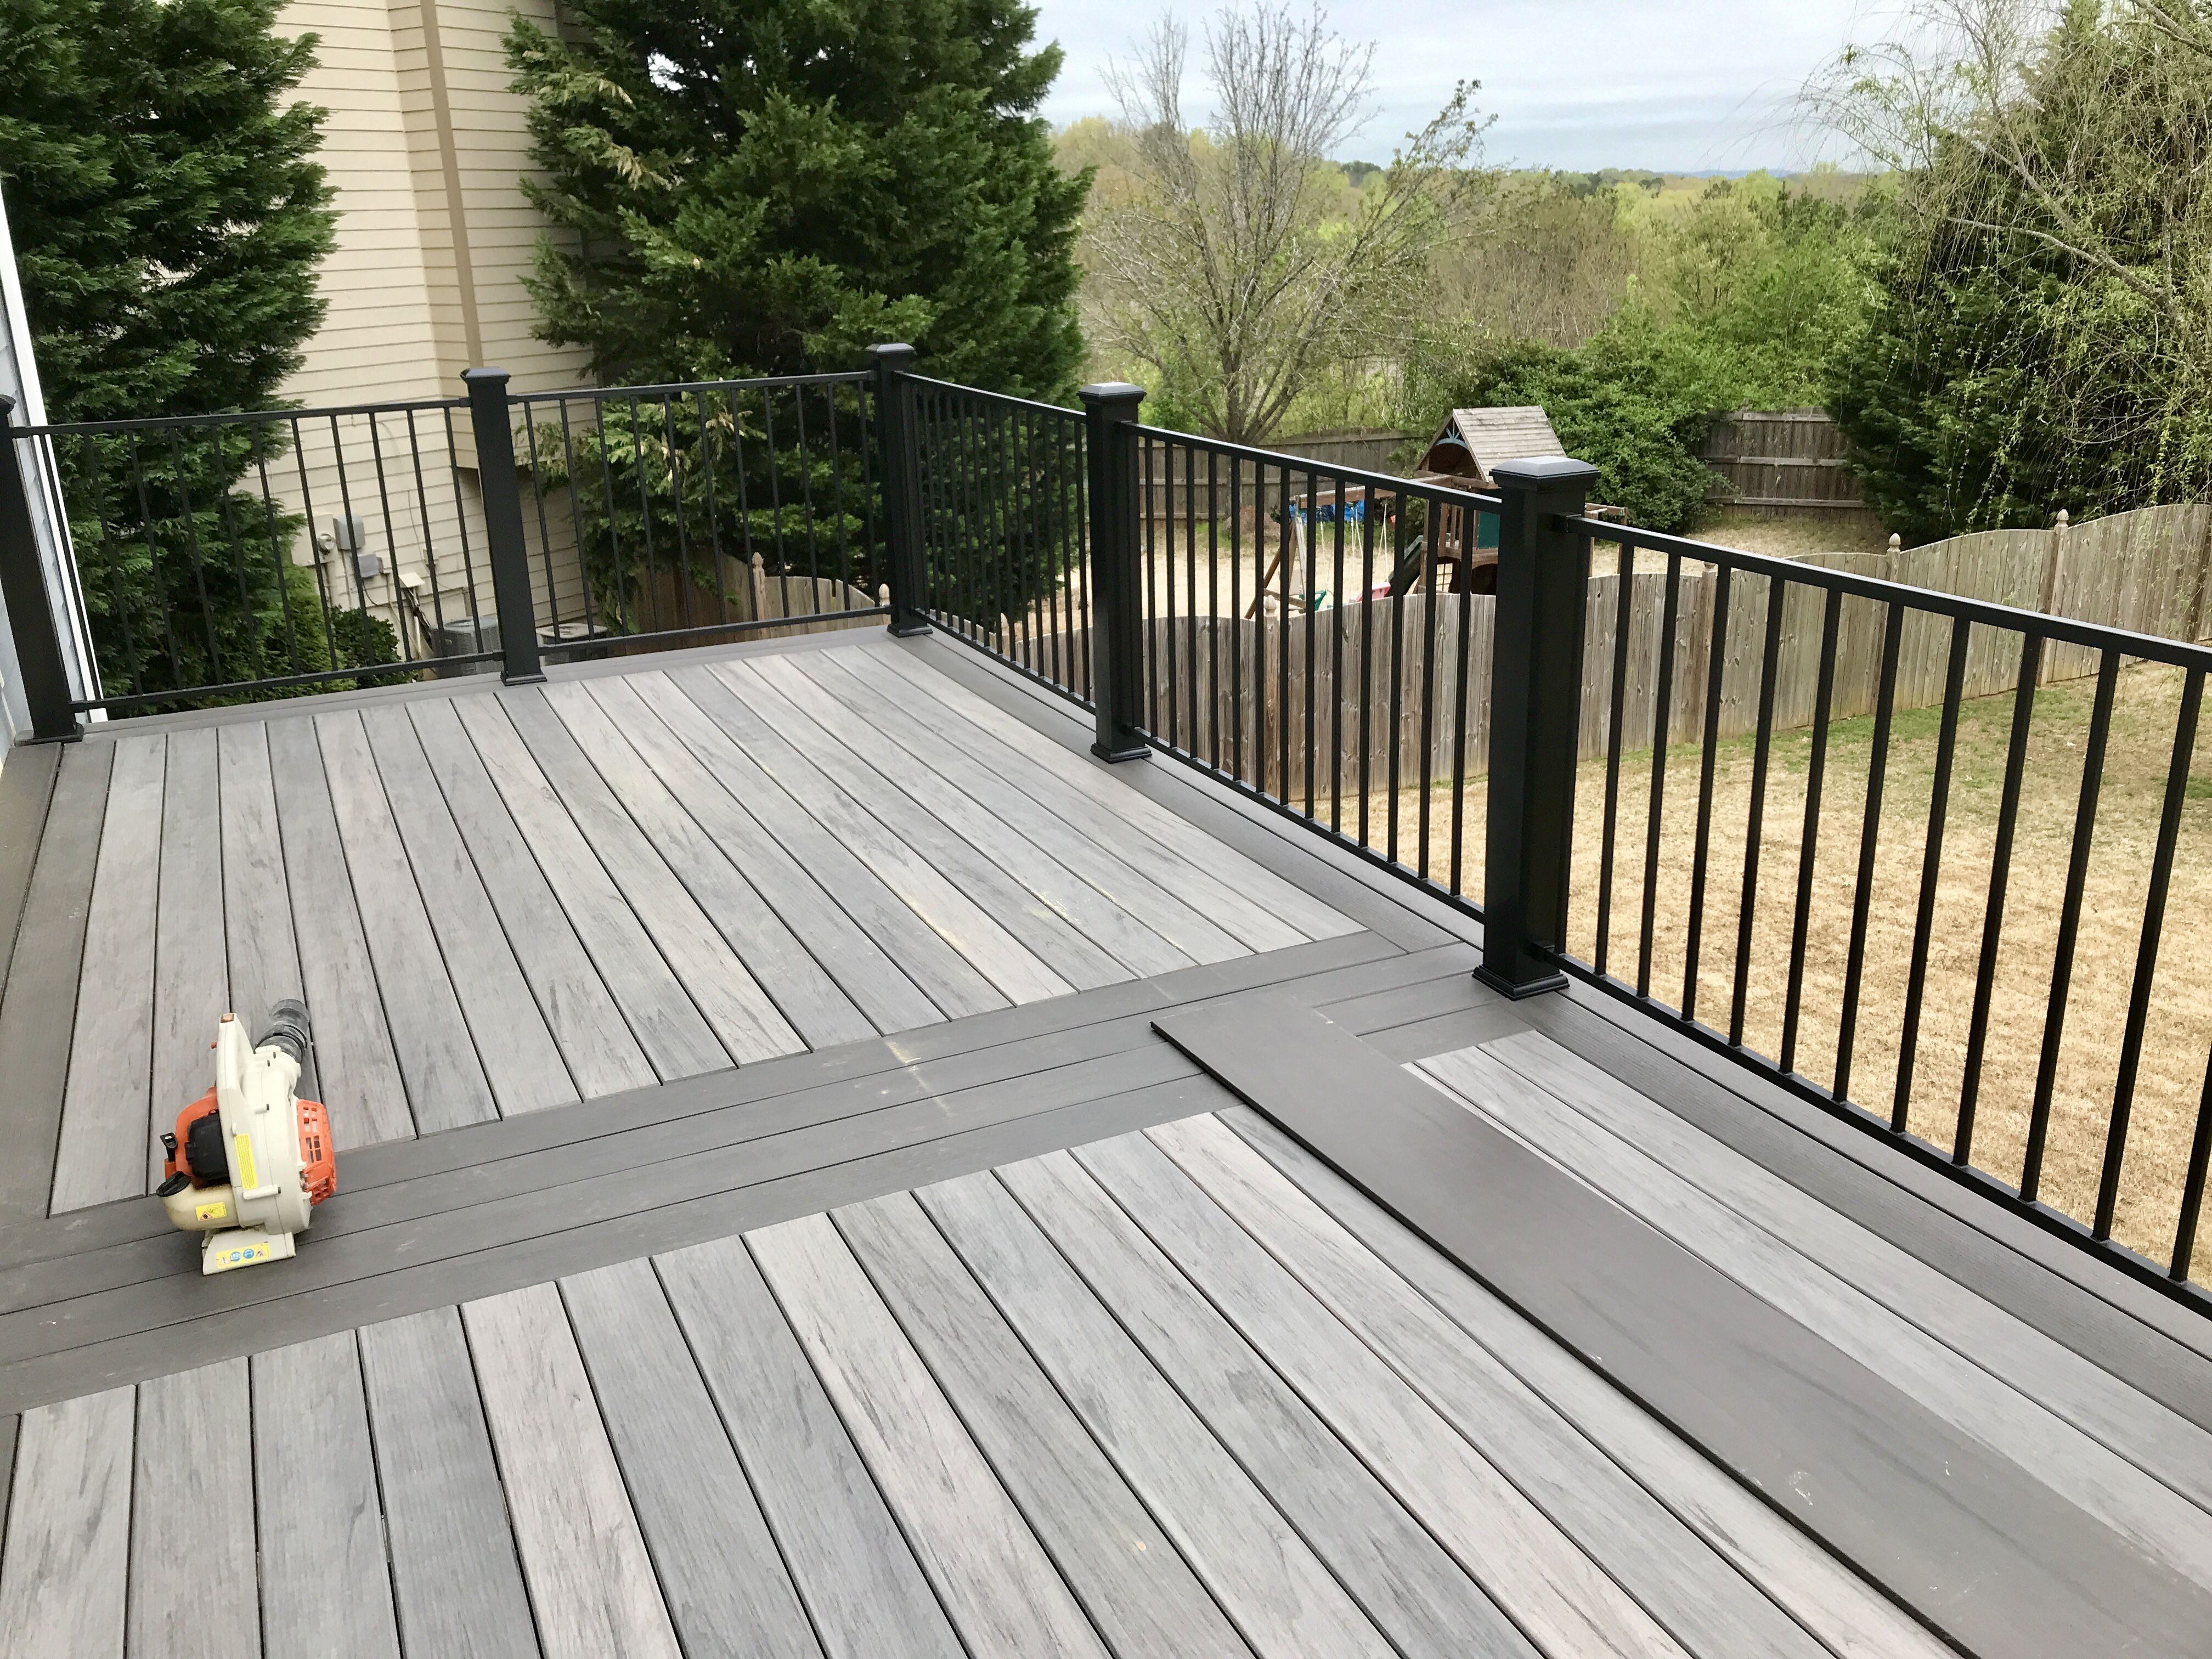 Installing Fortress Iron P26 Railing On A New Timbertech Legacy Composite Deck Railing In Black Sand Deck In Ash And Espr Composite Decking Deck Deck Remodel